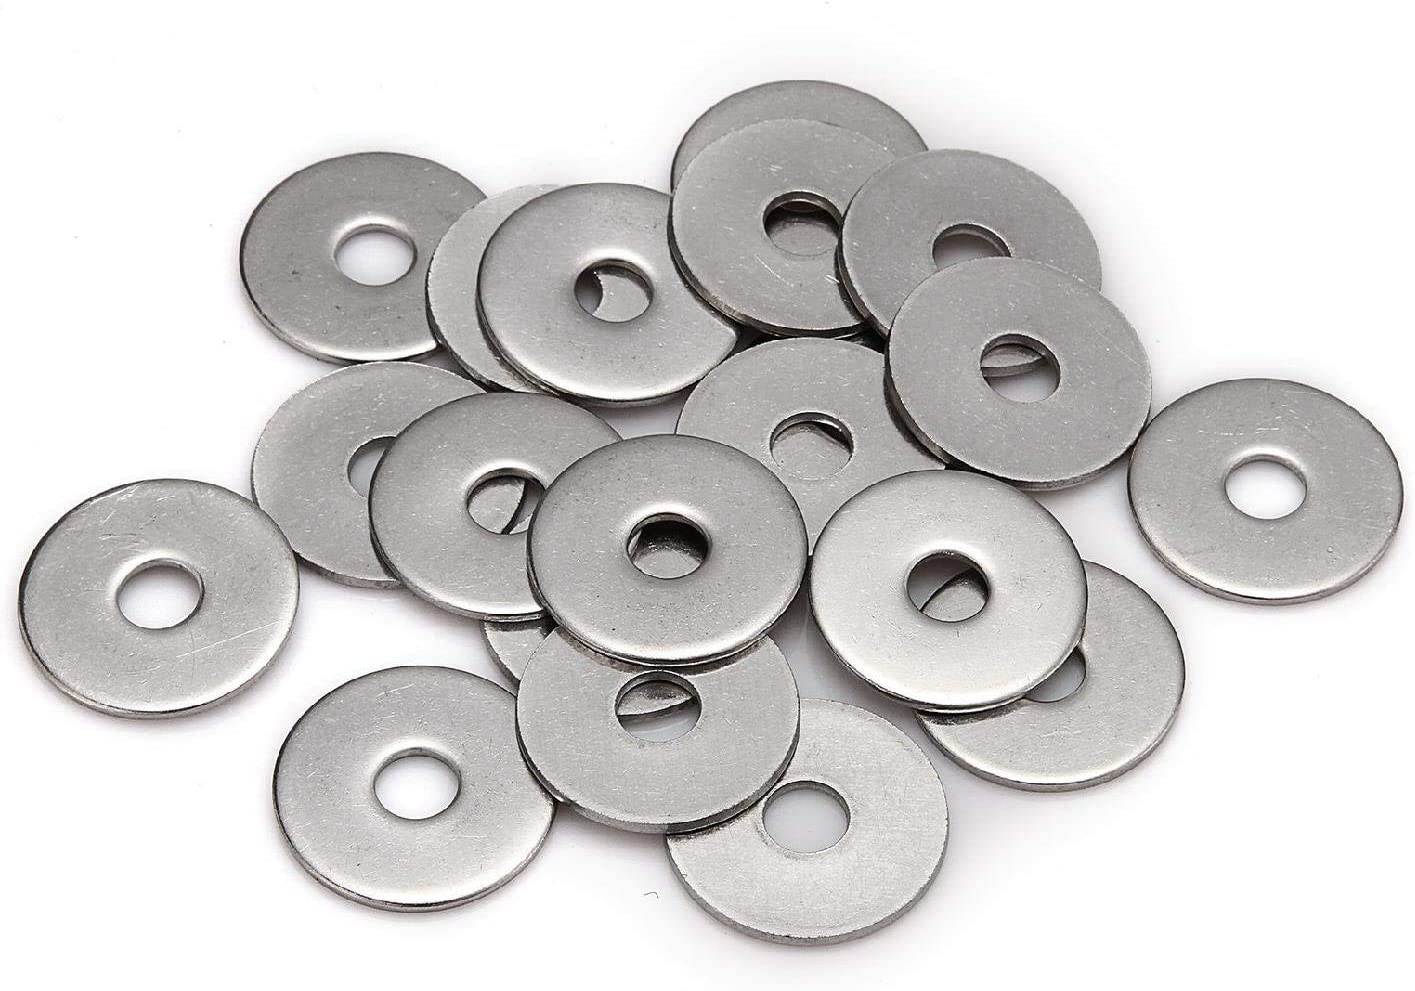 Form C 25 x Heavy Duty 20mm Washers Bright Zinc Plated for Nuts Bolts /& Screws